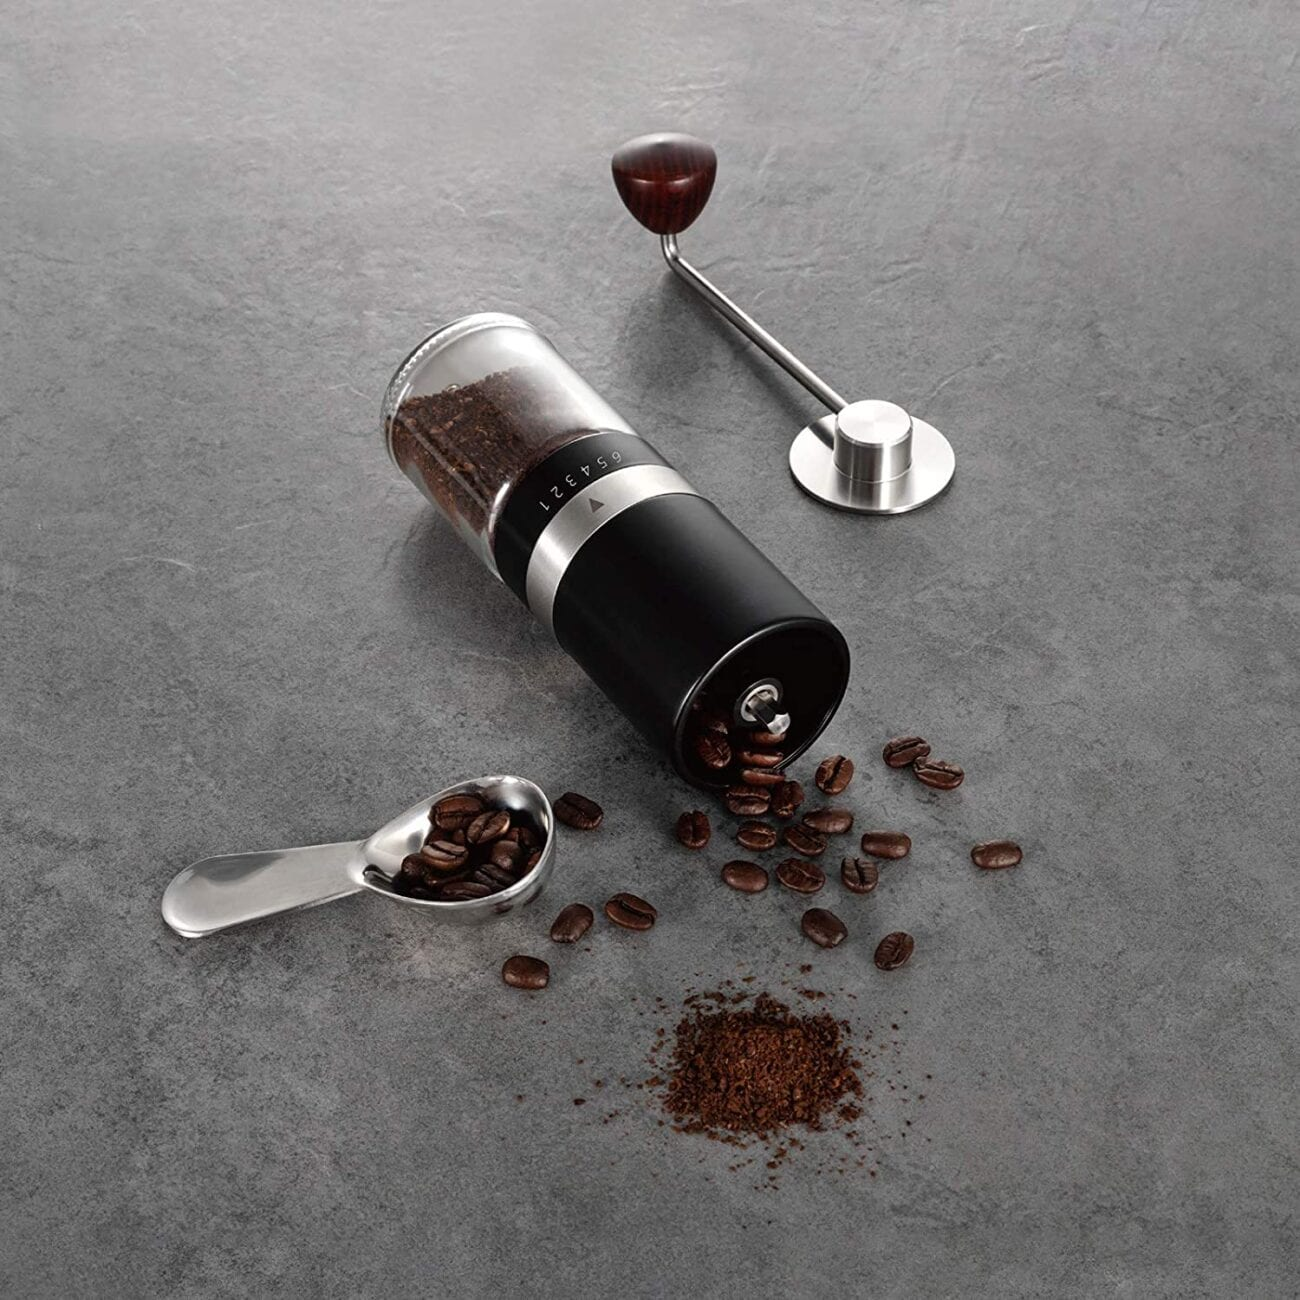 If you need to give a gift to a coffee lover in your life, the Vevok Chef Manual Coffee Grinder couldn't be a more perfect gift.